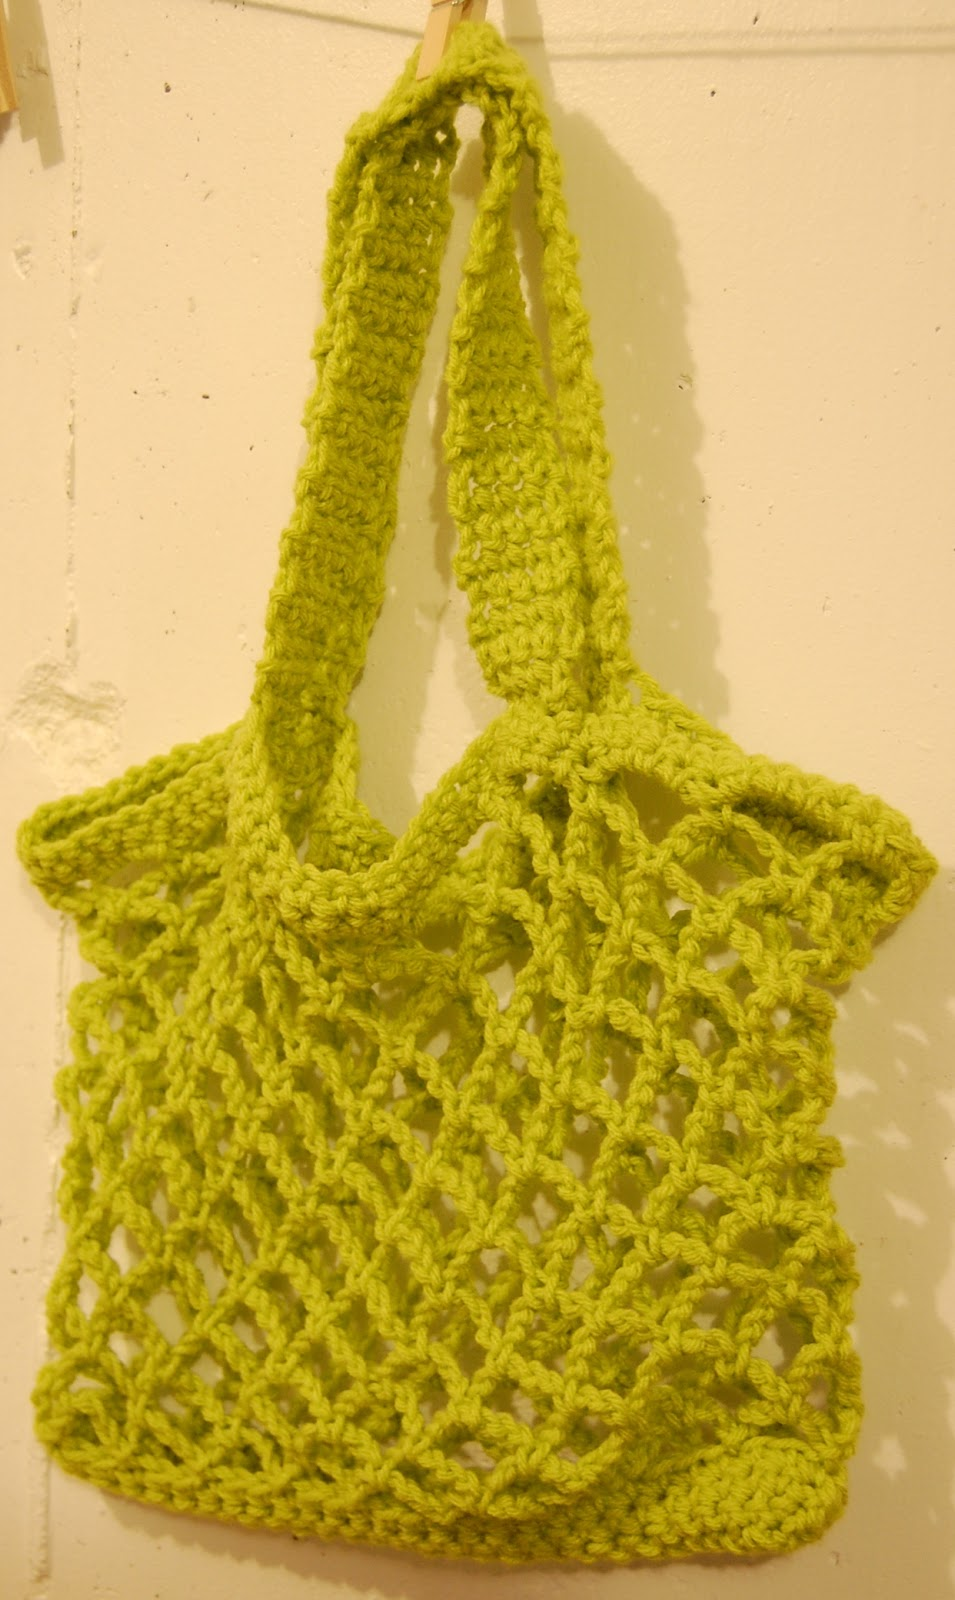 Crochet Market Bag Pattern Free : The Hippy Hooker: Market Bag - Free Crochet Pattern